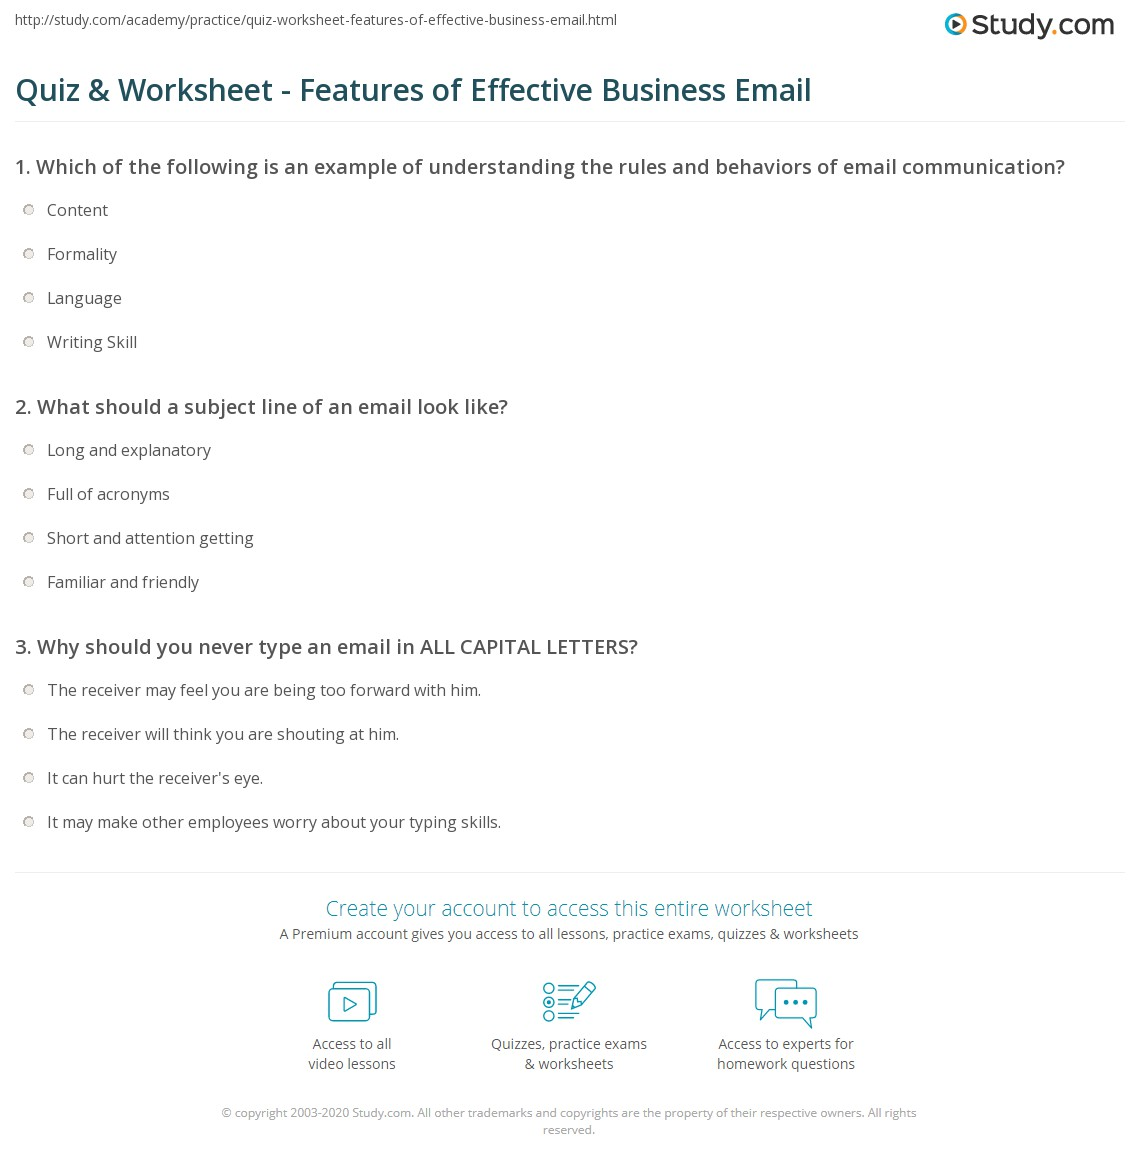 Quiz & Worksheet - Features of Effective Business Email | Study.com